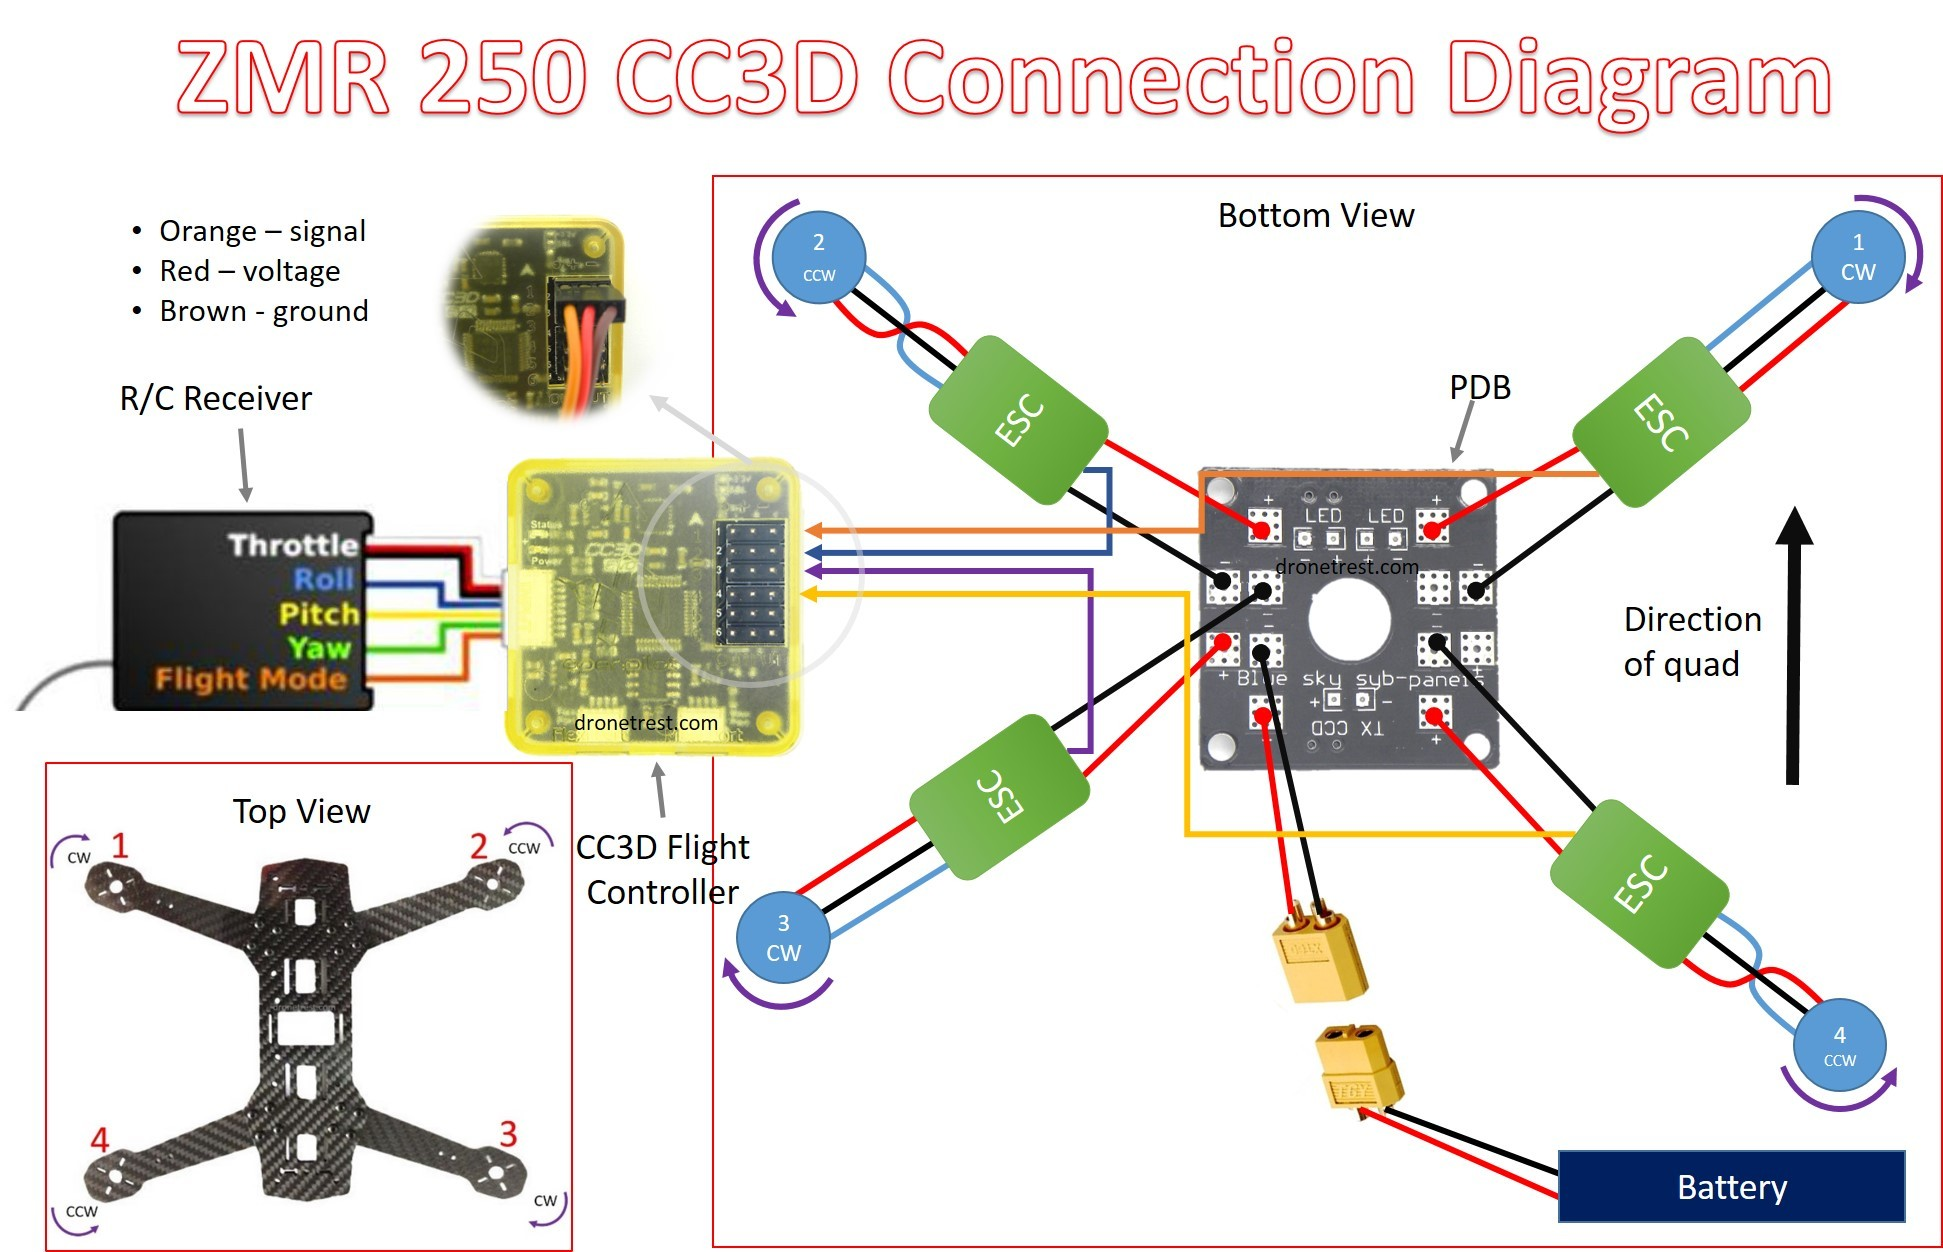 ZMR-250-Connection.jpg1943x1252 318 KB